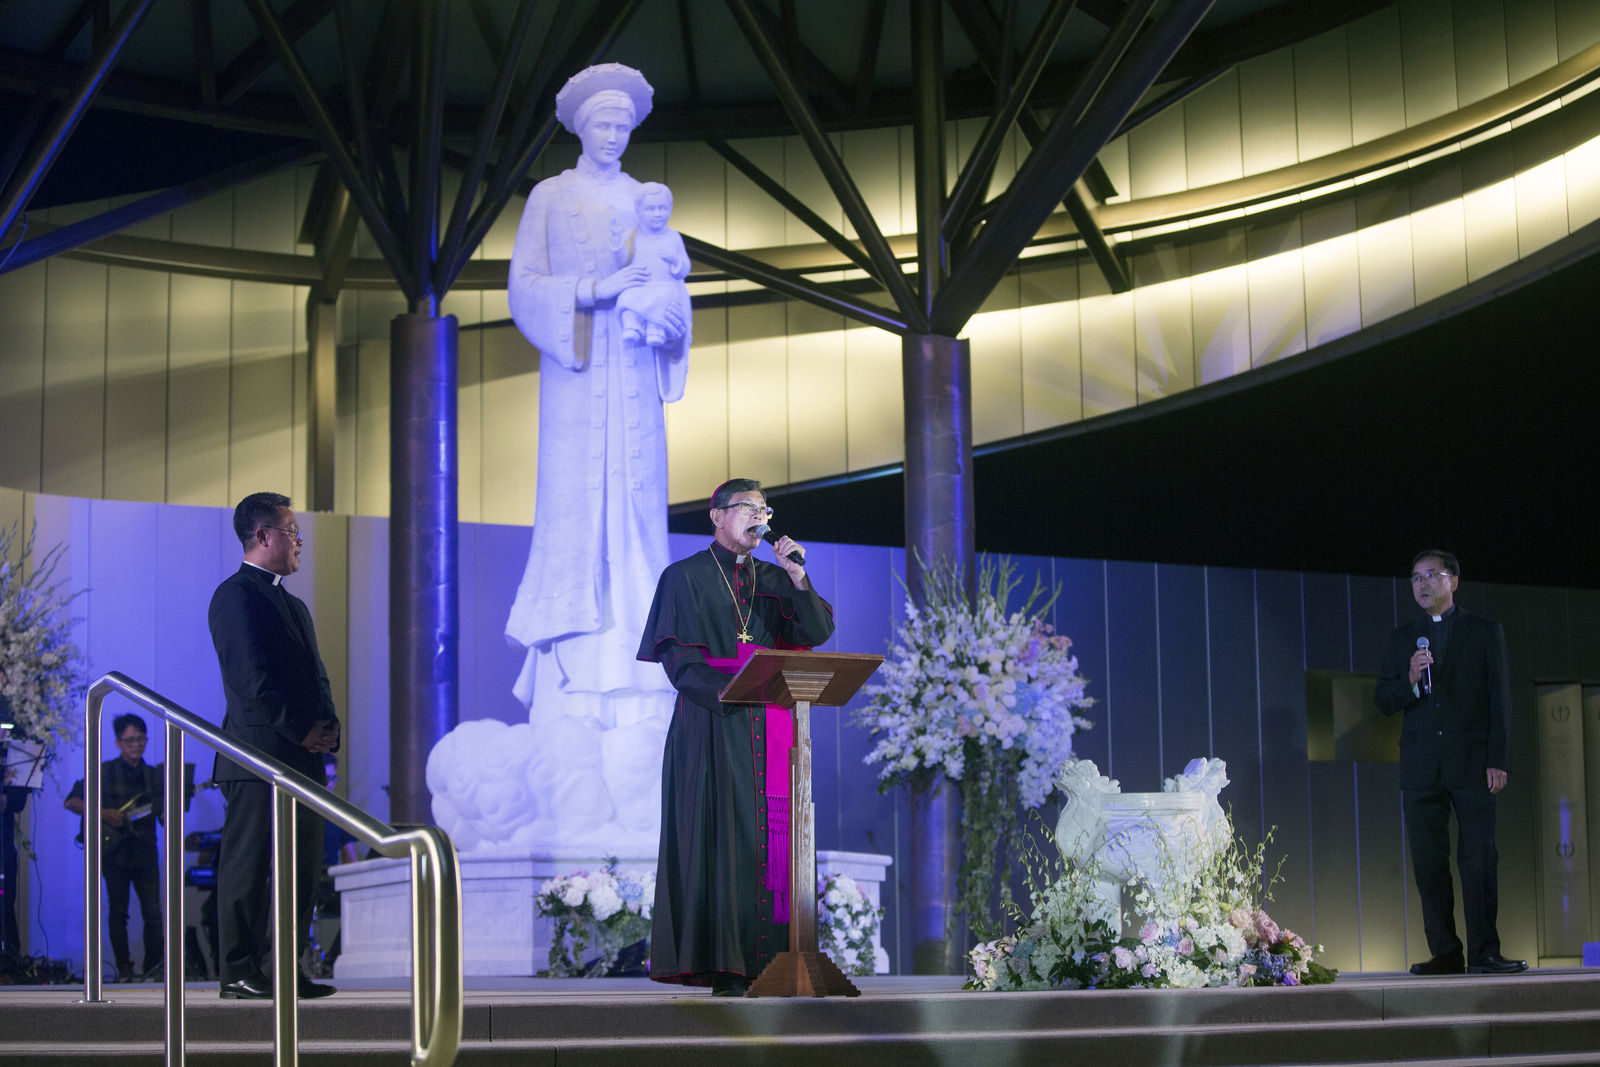 Bishop Thanh Thai Nguyen addresses the audience during the evening of the Solemn Blessing of the Our Lady of La Vang Shrine ceremony. Photo courtesy Diocese of Orange.